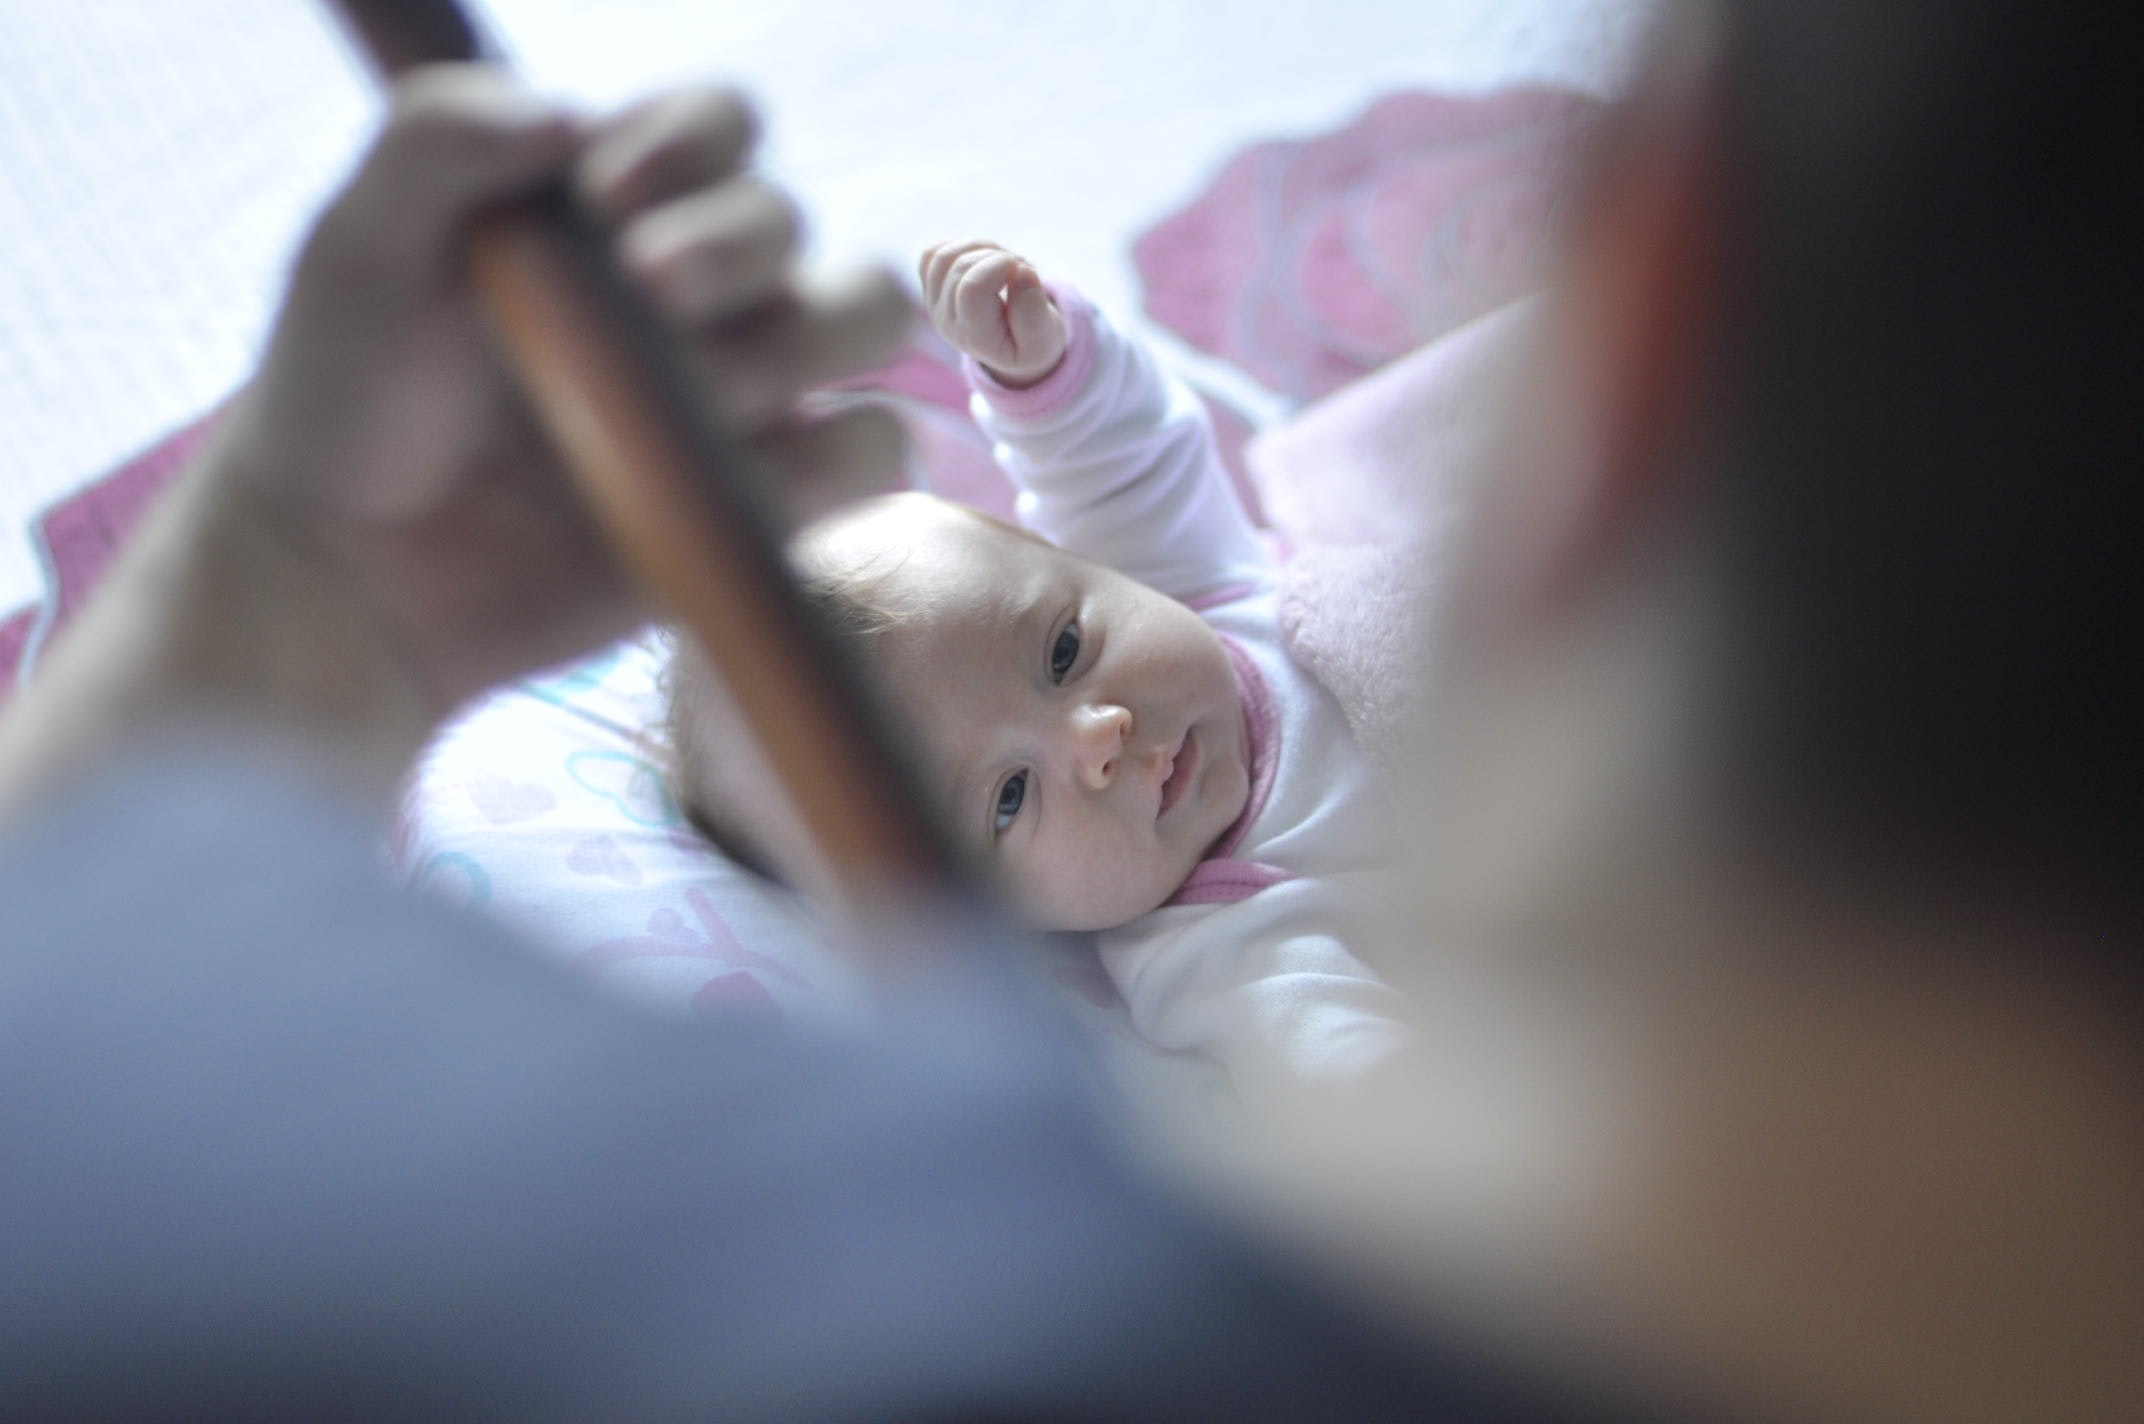 A father plays guitar for his baby, who lays on the bed watching.